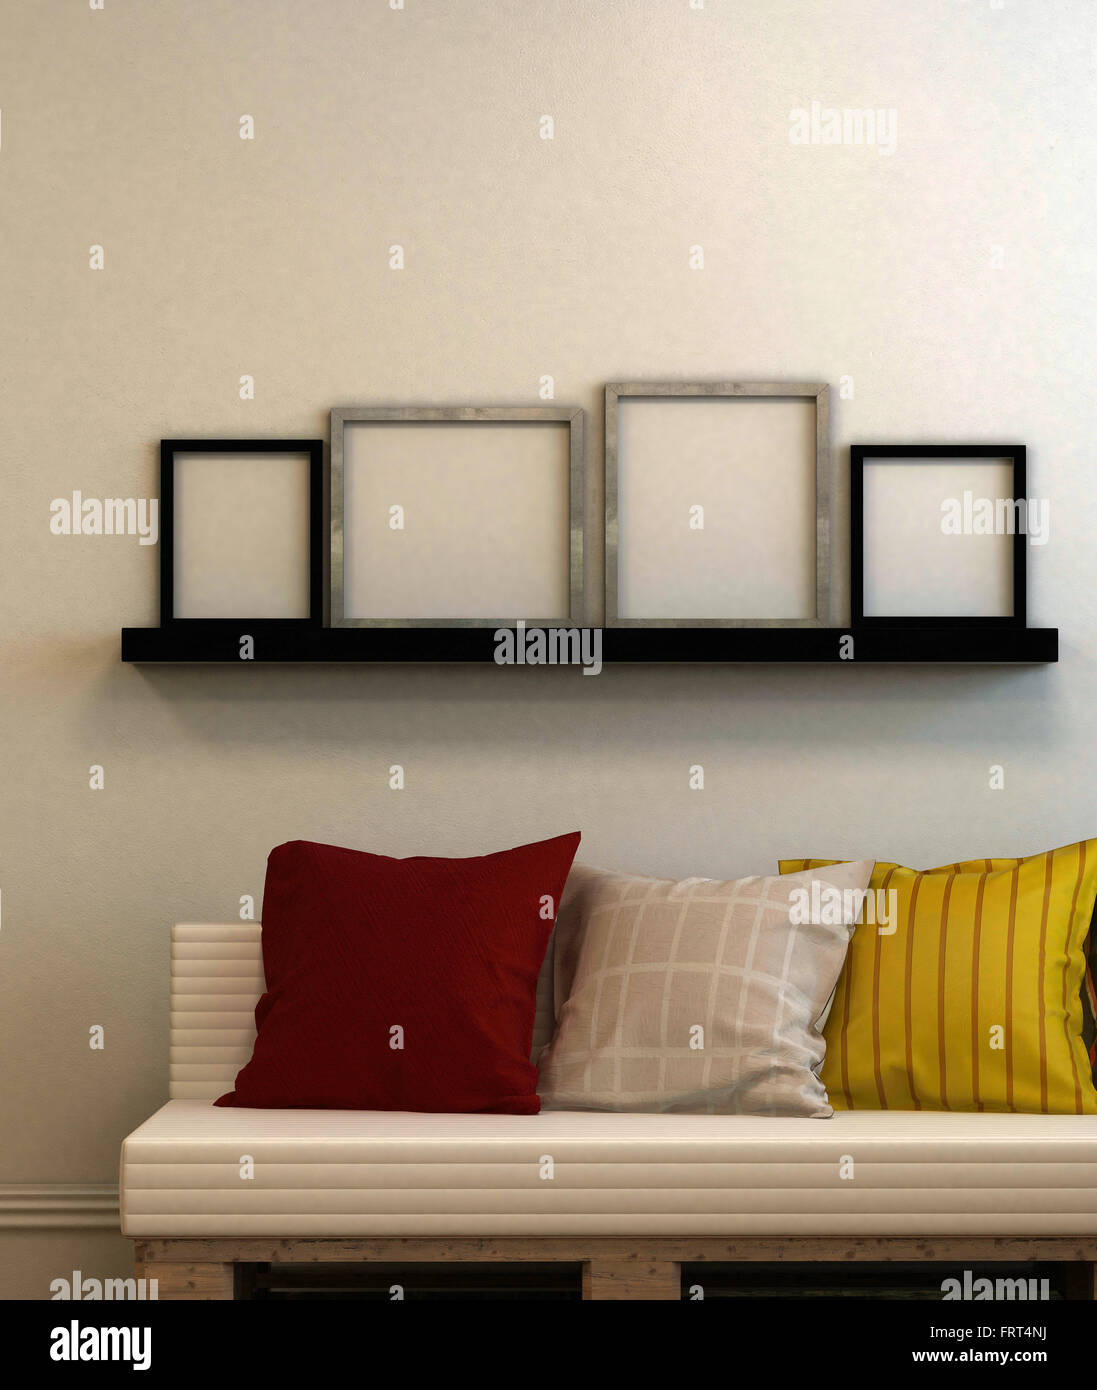 Modern Couch With Cushions And Four Blank Picture Frames On